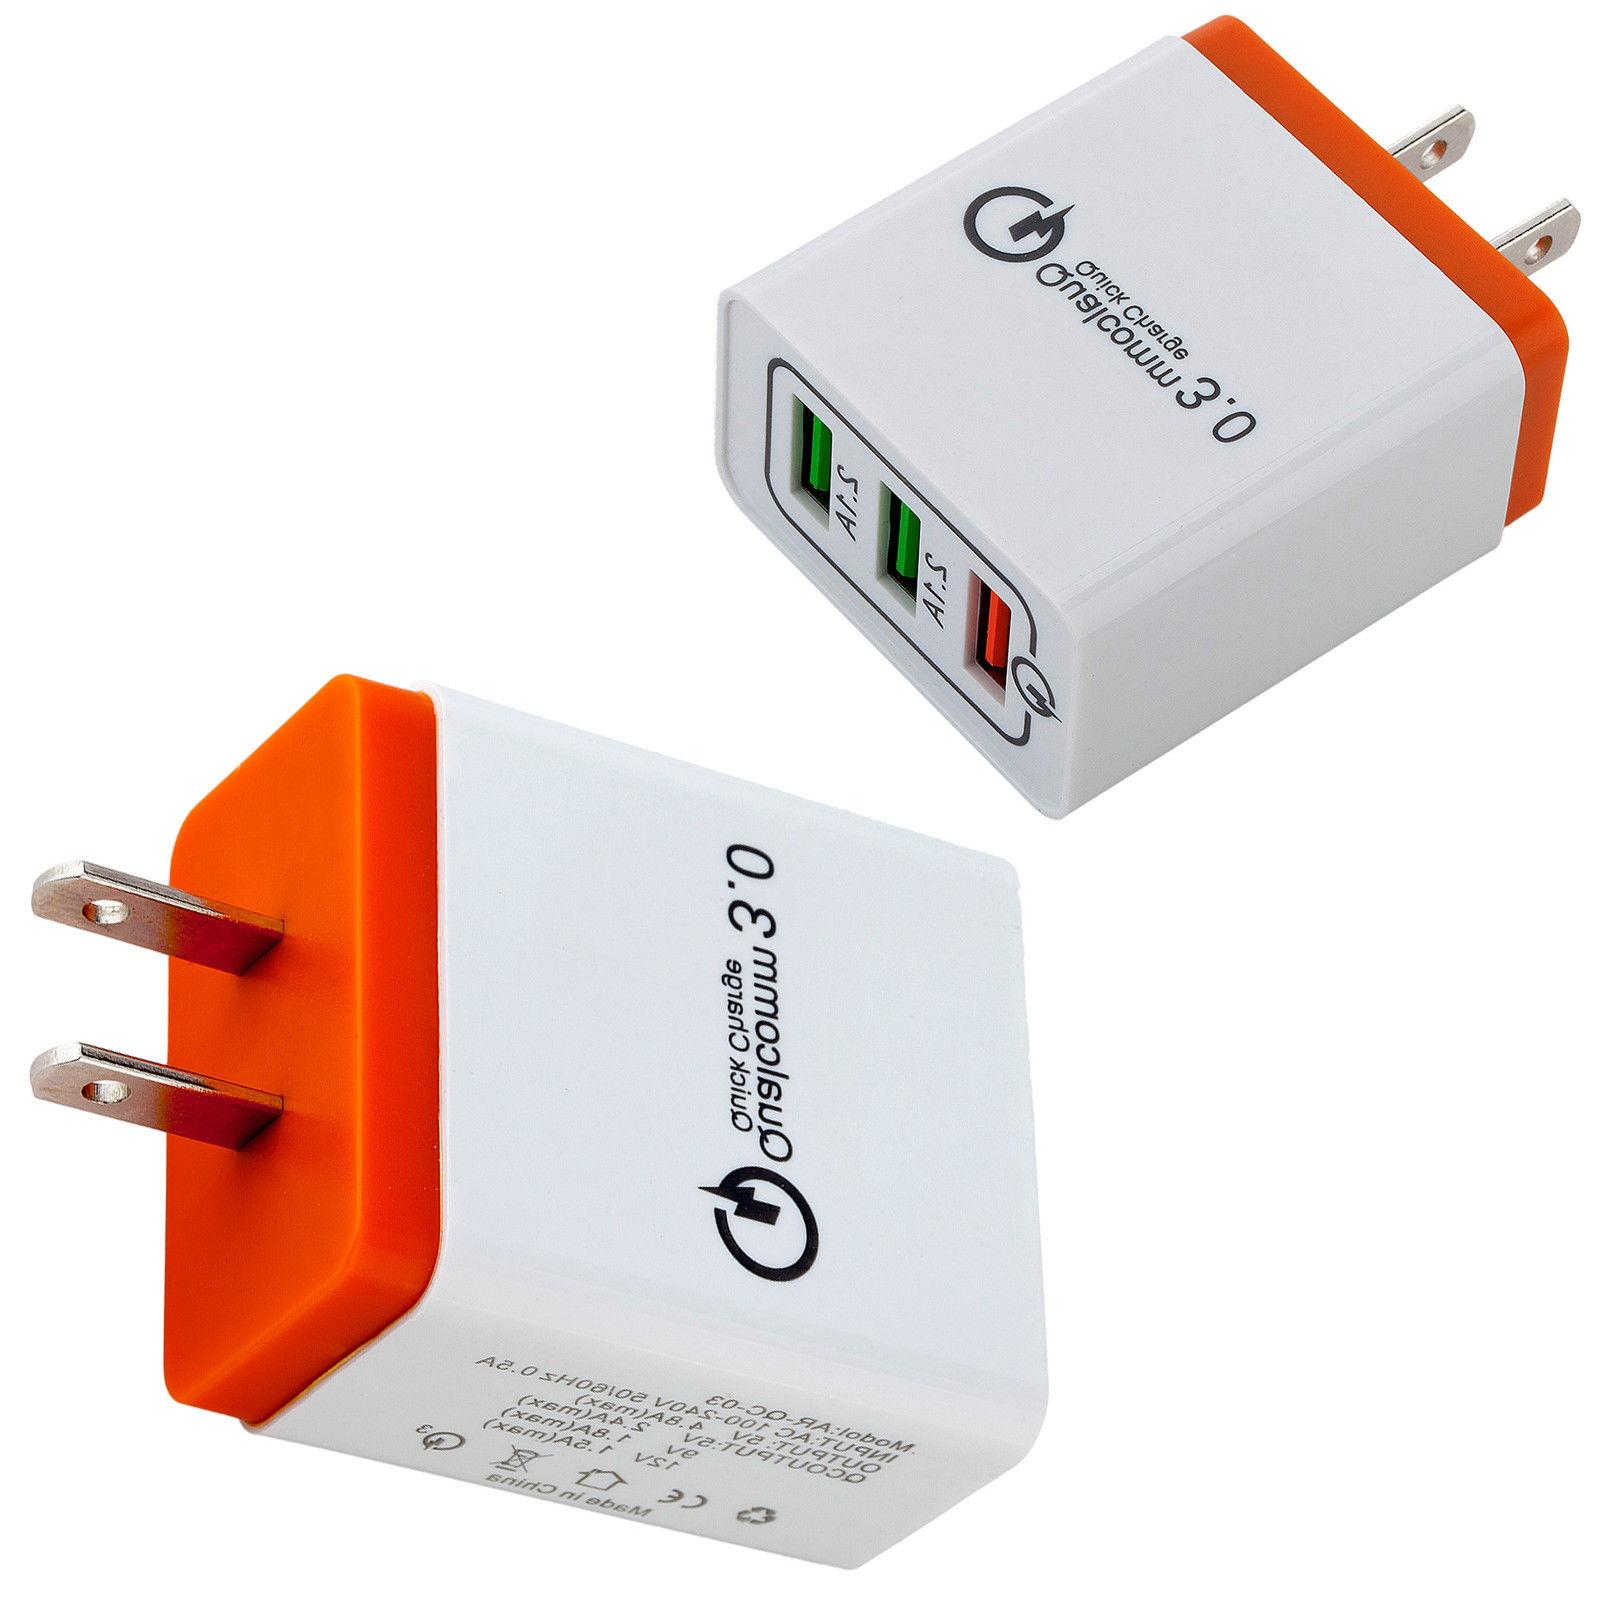 30W USB Charger Quick Charge iPhone Samsung